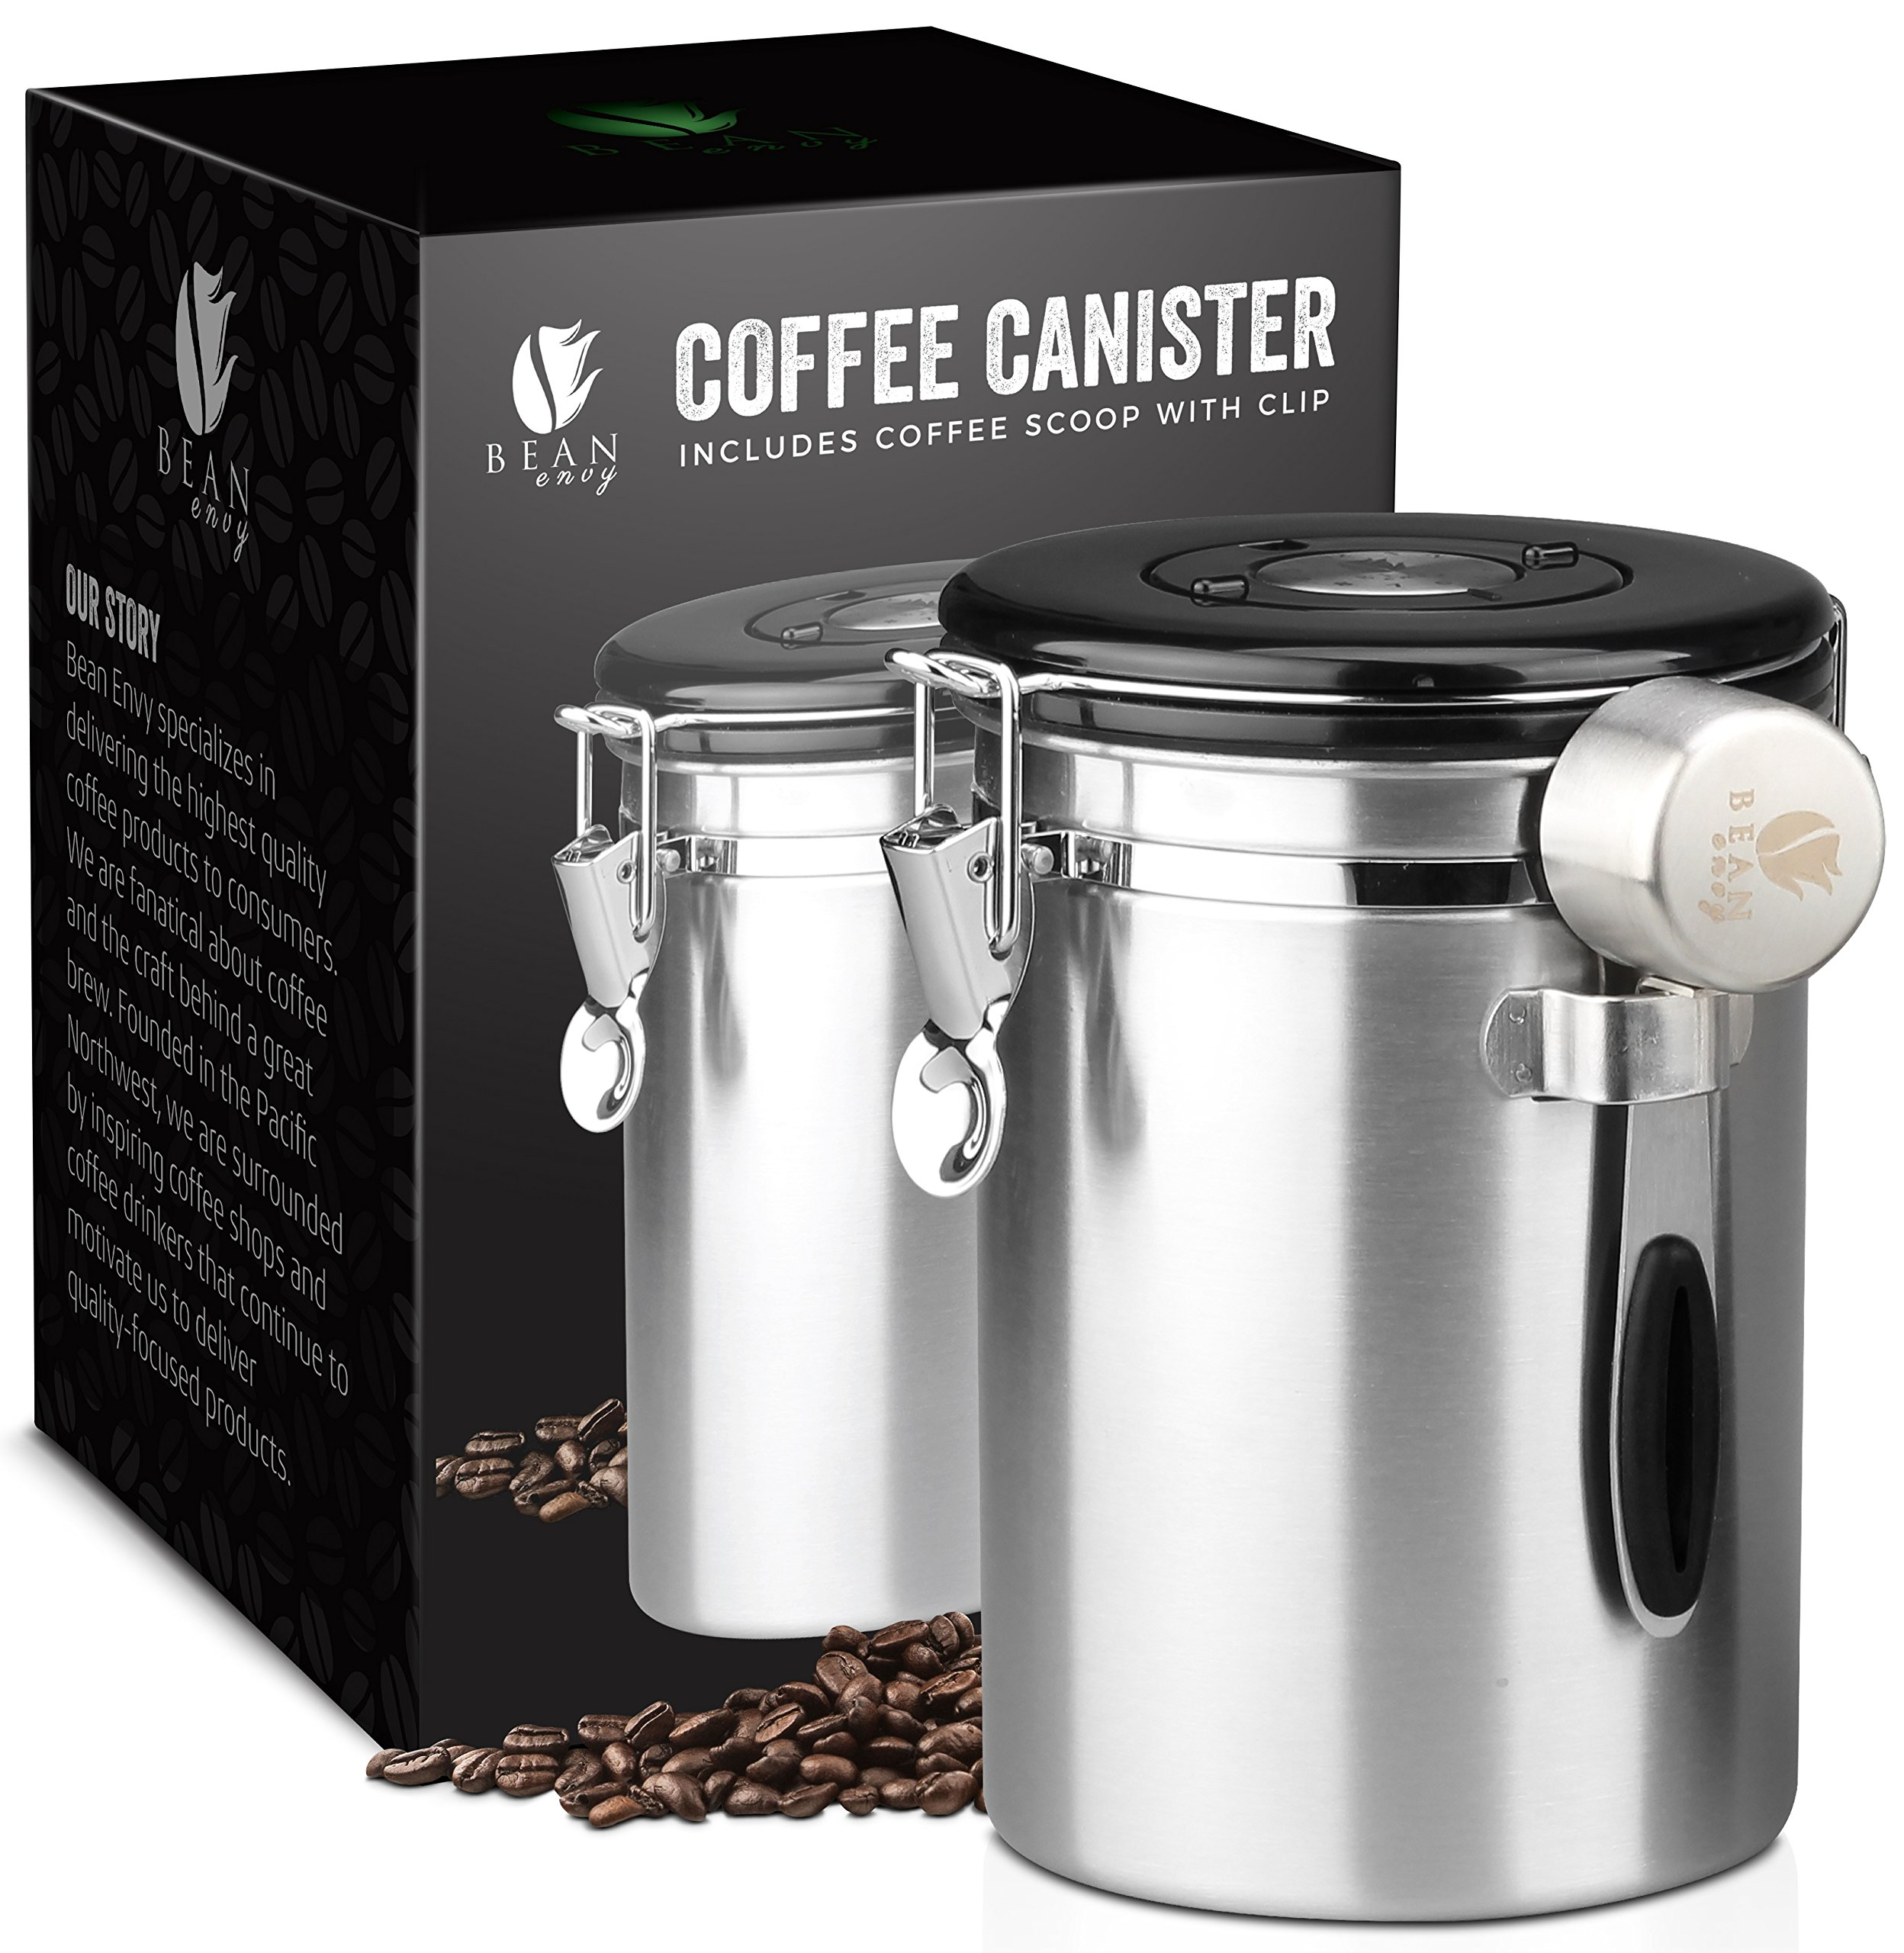 Bean Envy Airtight Coffee Canister - 16 oz - Includes Stainless Steel Coffee Scoop - Vacuum Sealed Container With Cantilever Lid - Co2 Gas Release Wicovalve & Numerical Day/Month Tracker by Bean Envy